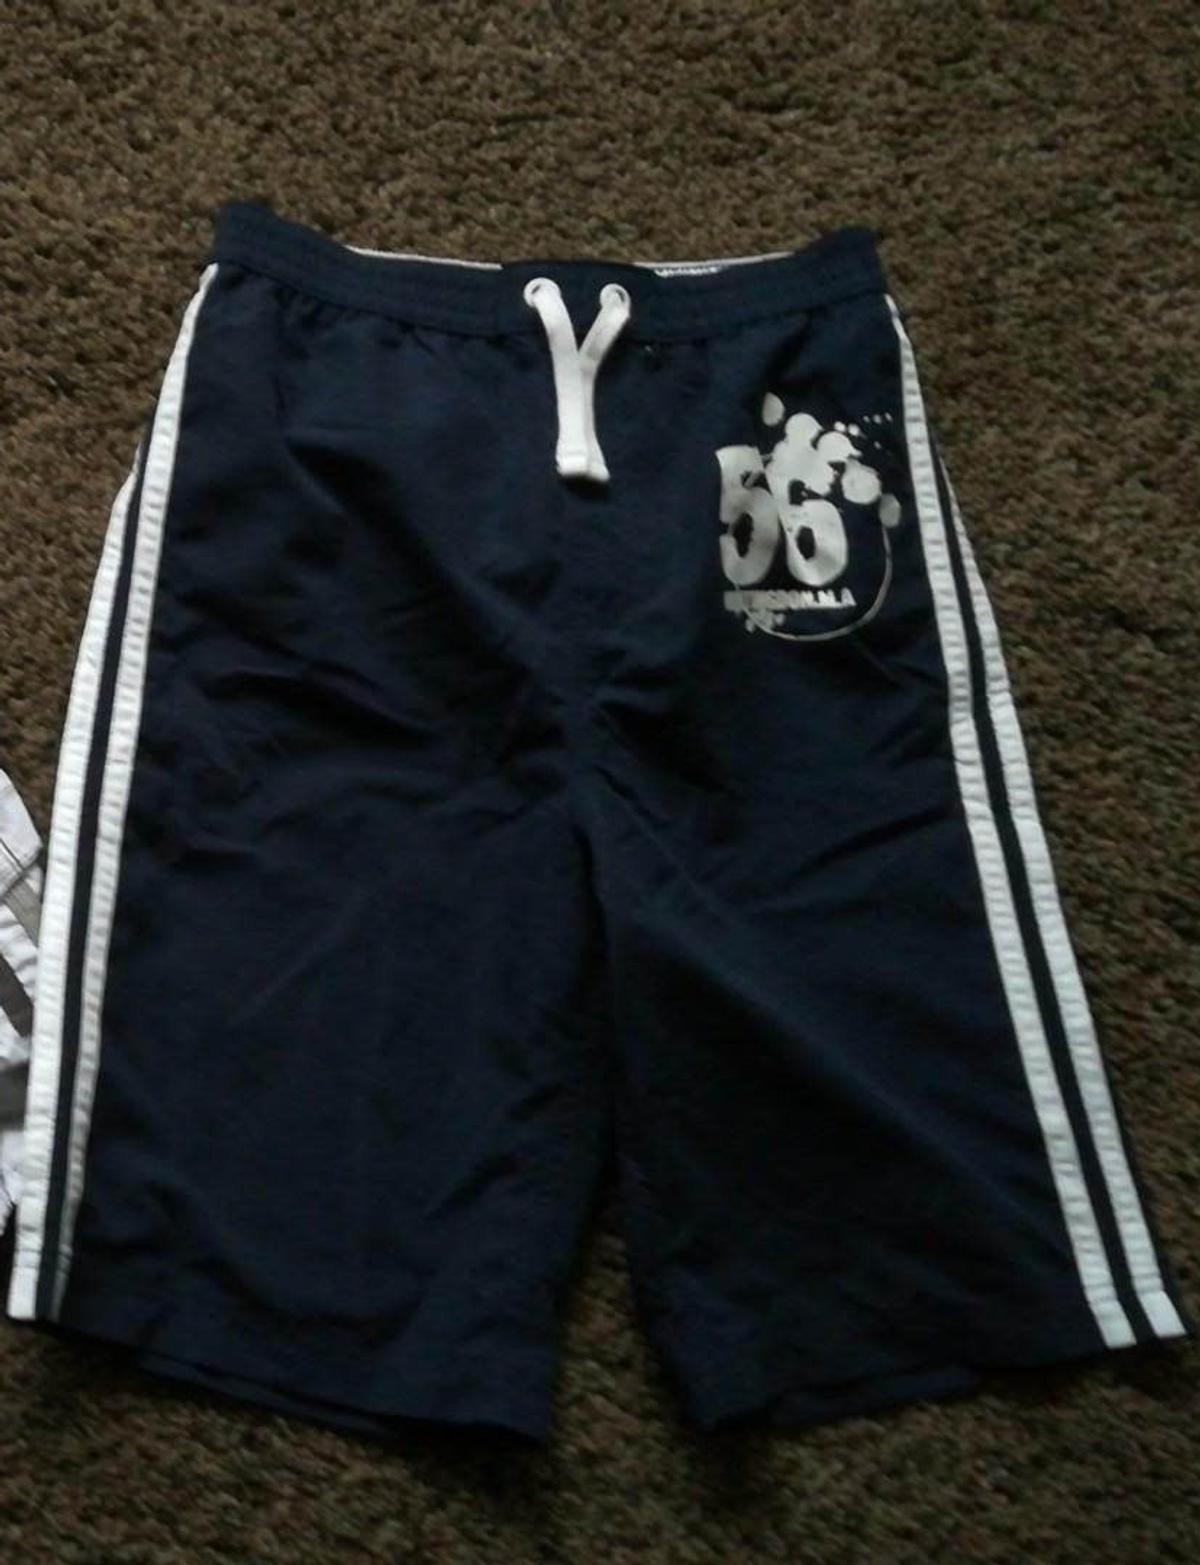 6f33e717e7 BOYS SWIMMING SHORTS AGE 13-14 in NP12 Pengam for £2.00 for sale ...